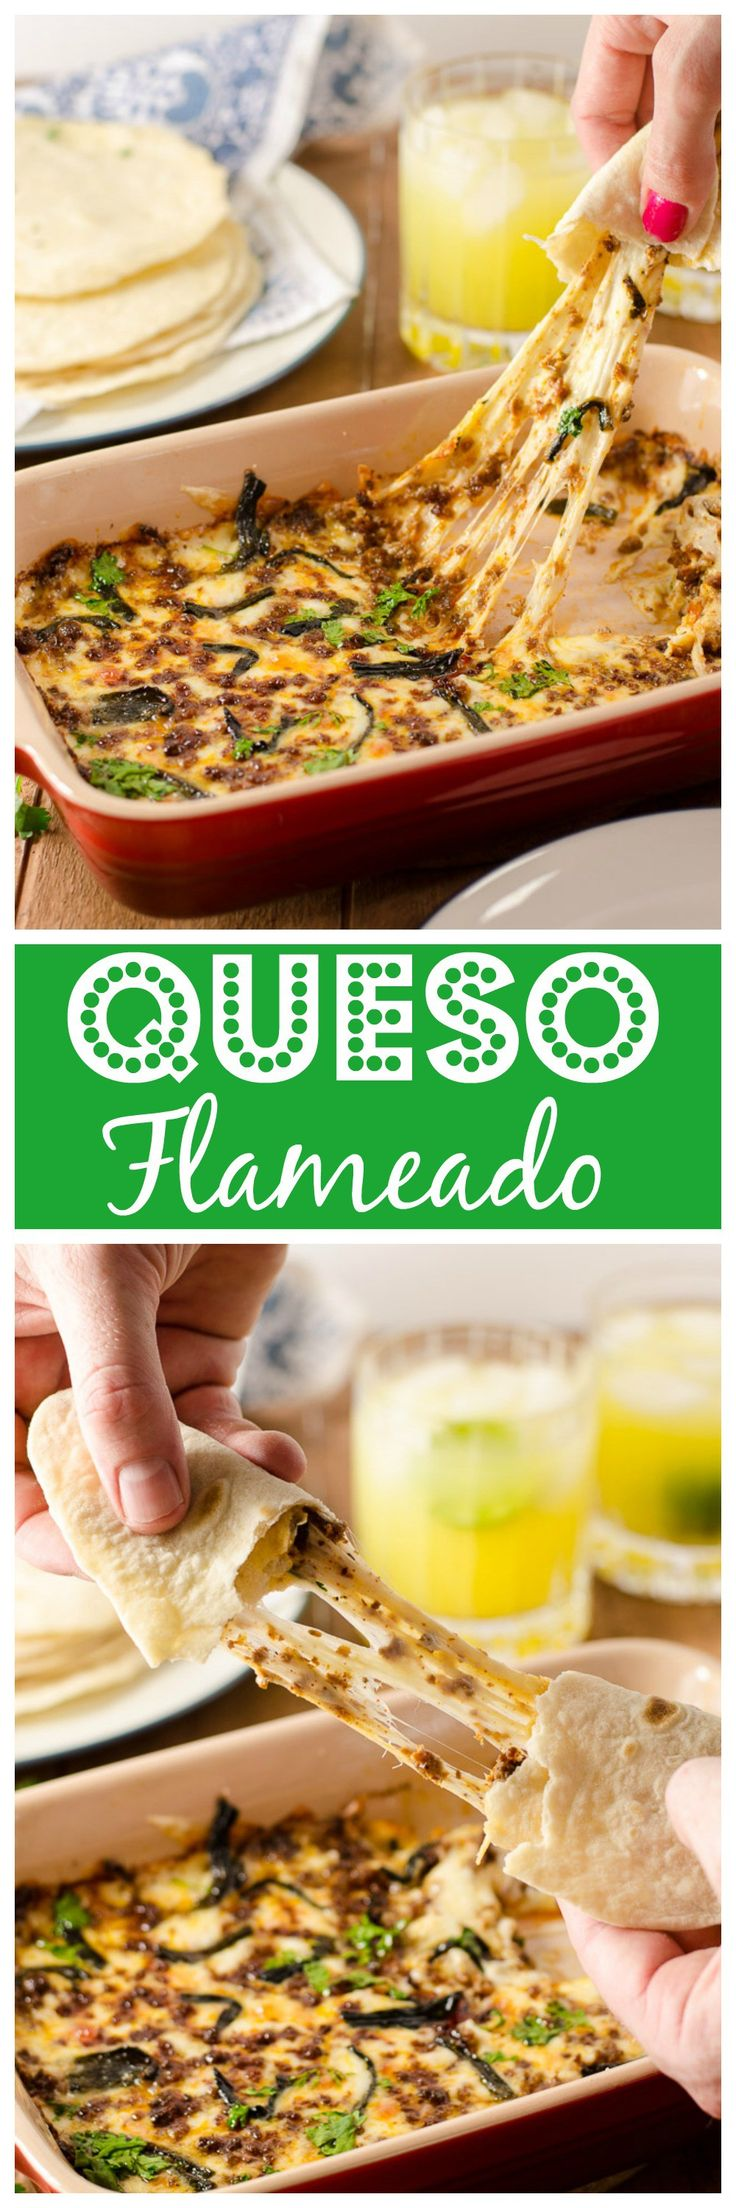 Queso flameado is an incredibly cheesy, just-slightly-spicy appetizer of mind-boggling deliciousness. Wrap in a tortilla and die happy.